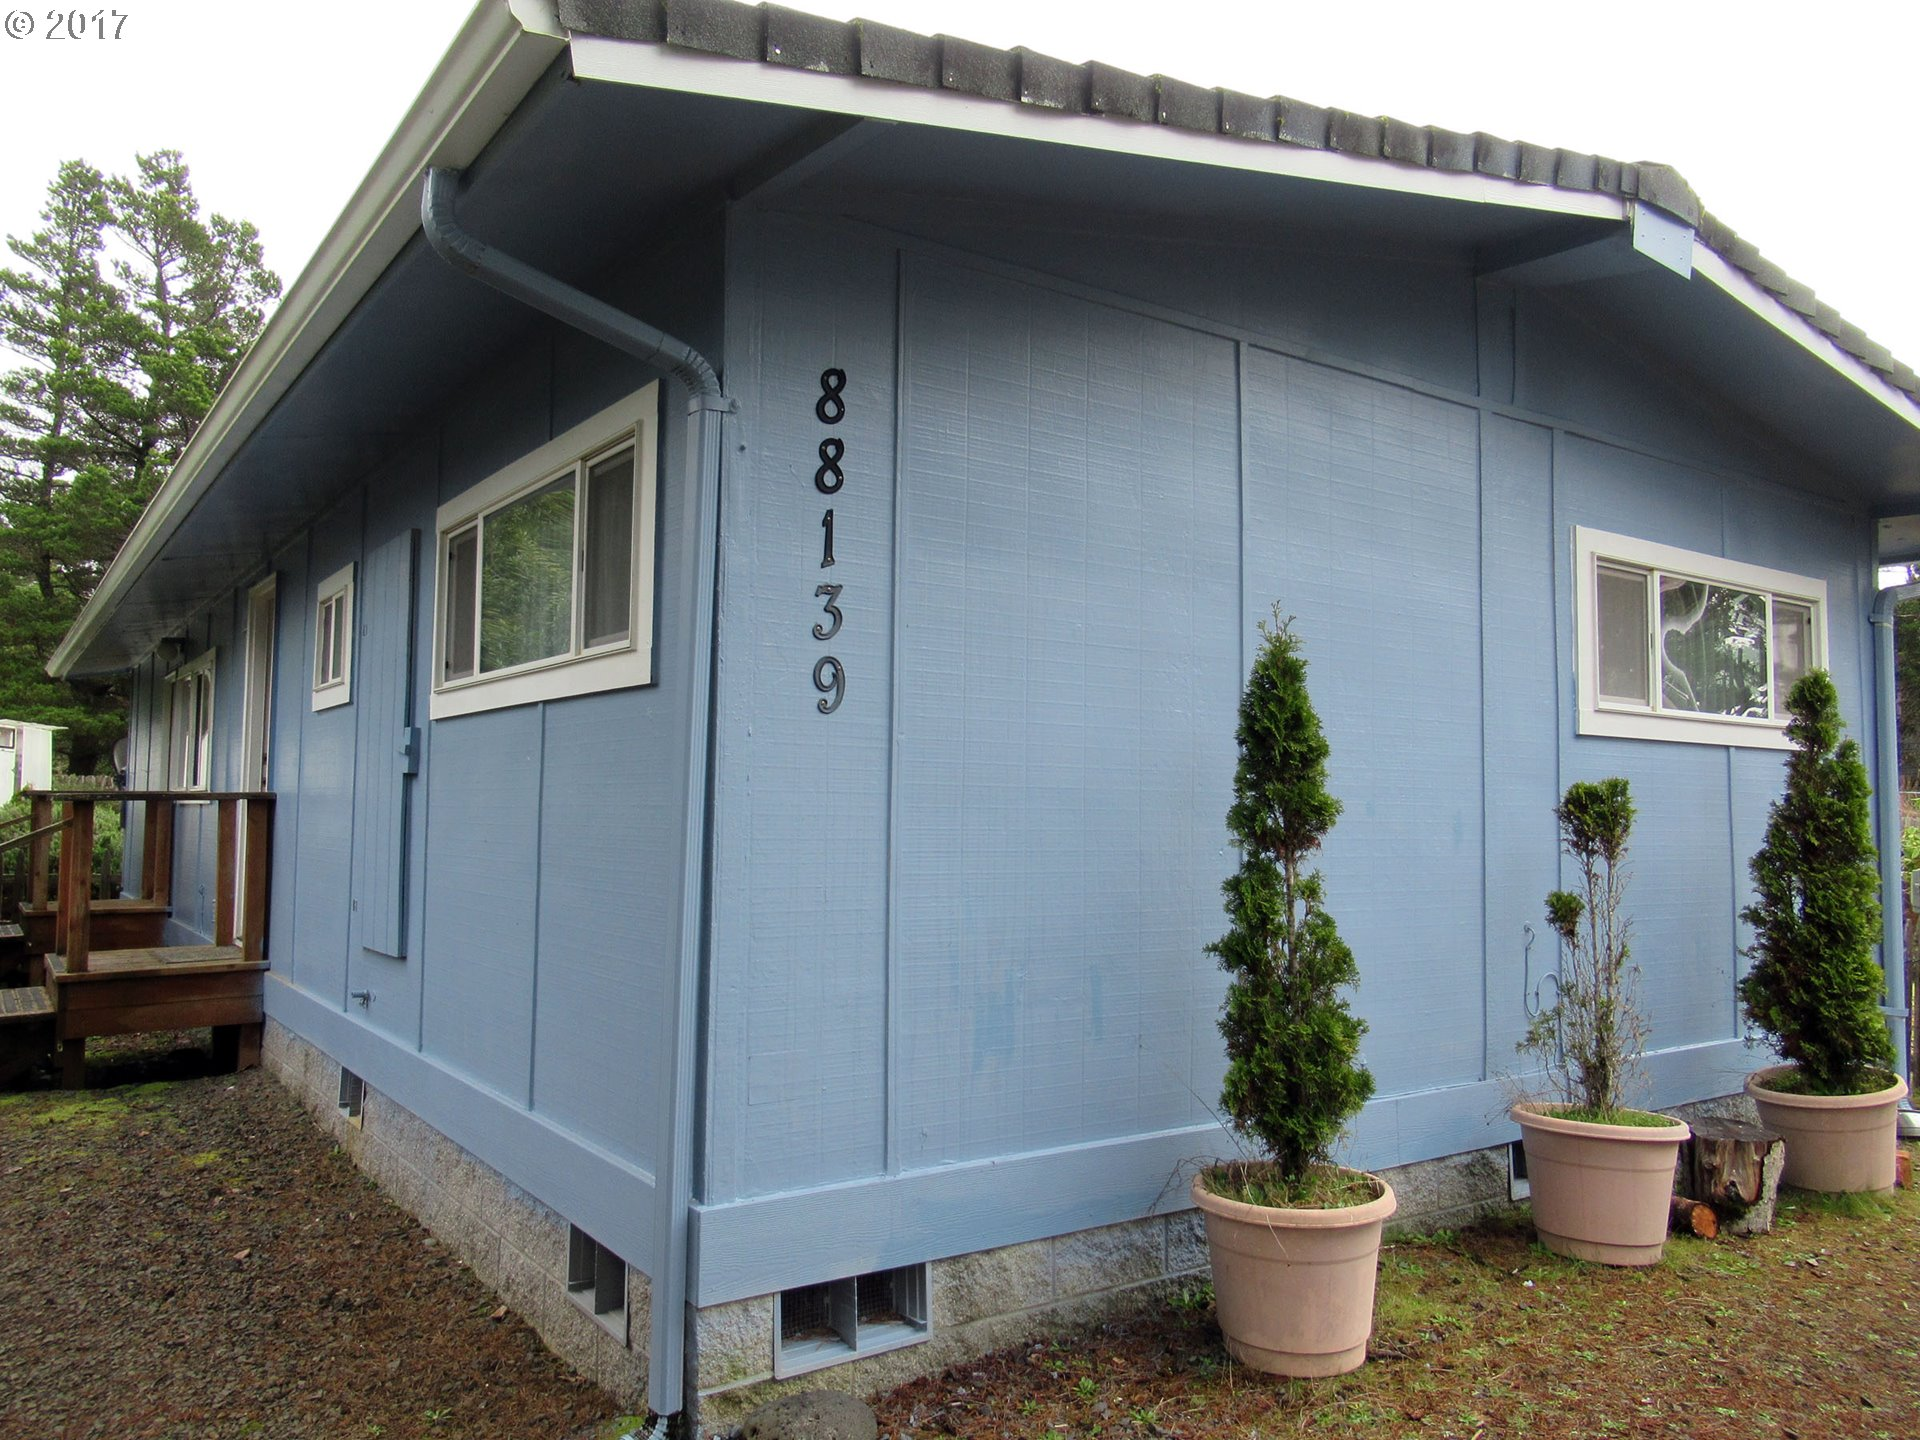 88139 3RD AVE, Florence, OR 97439